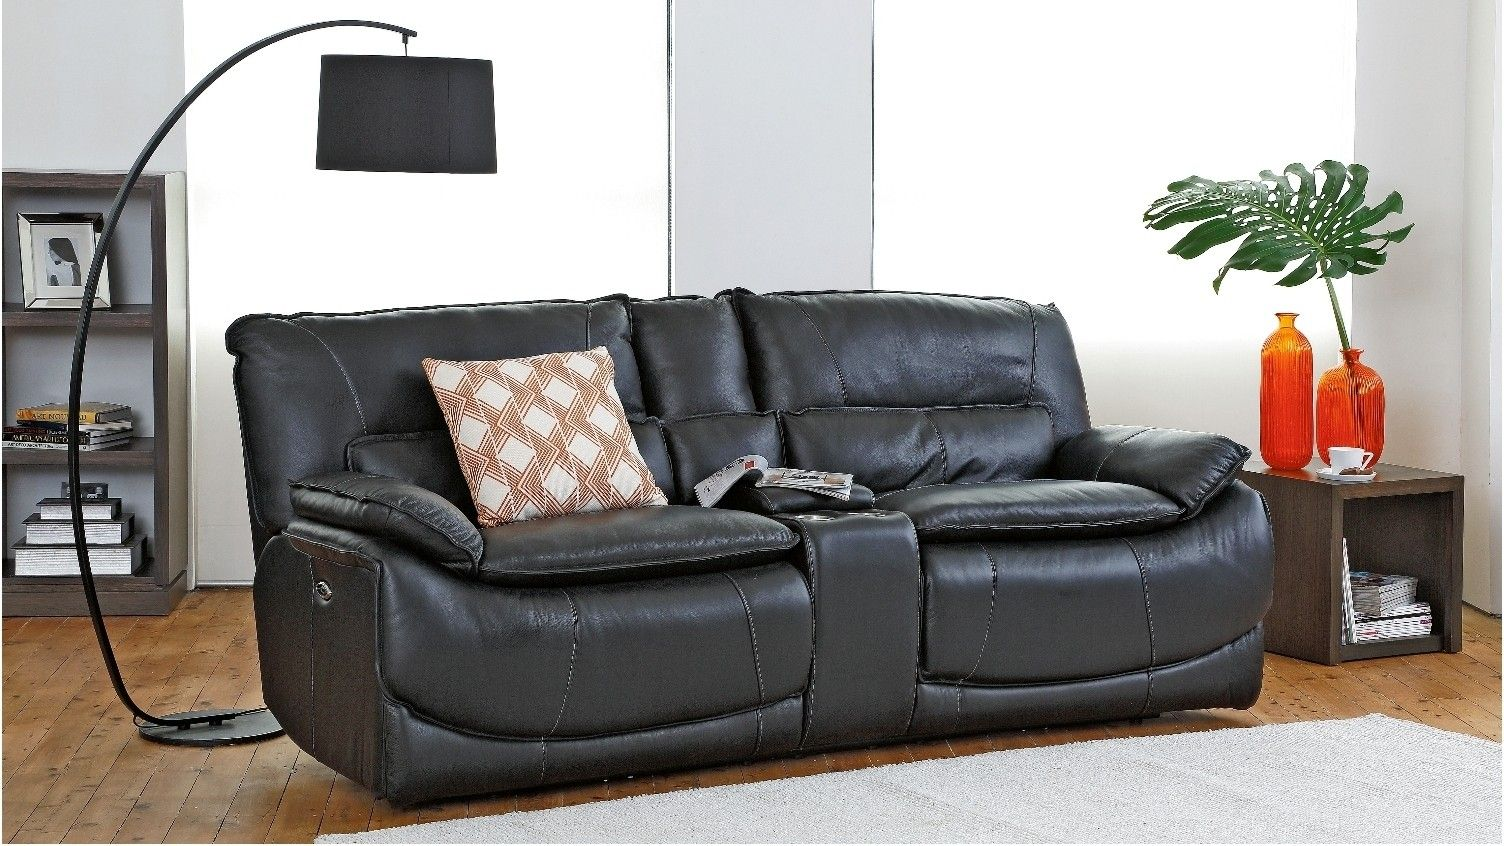 Tex Powered Italian Leather Recliner Sofa | Our new home ...